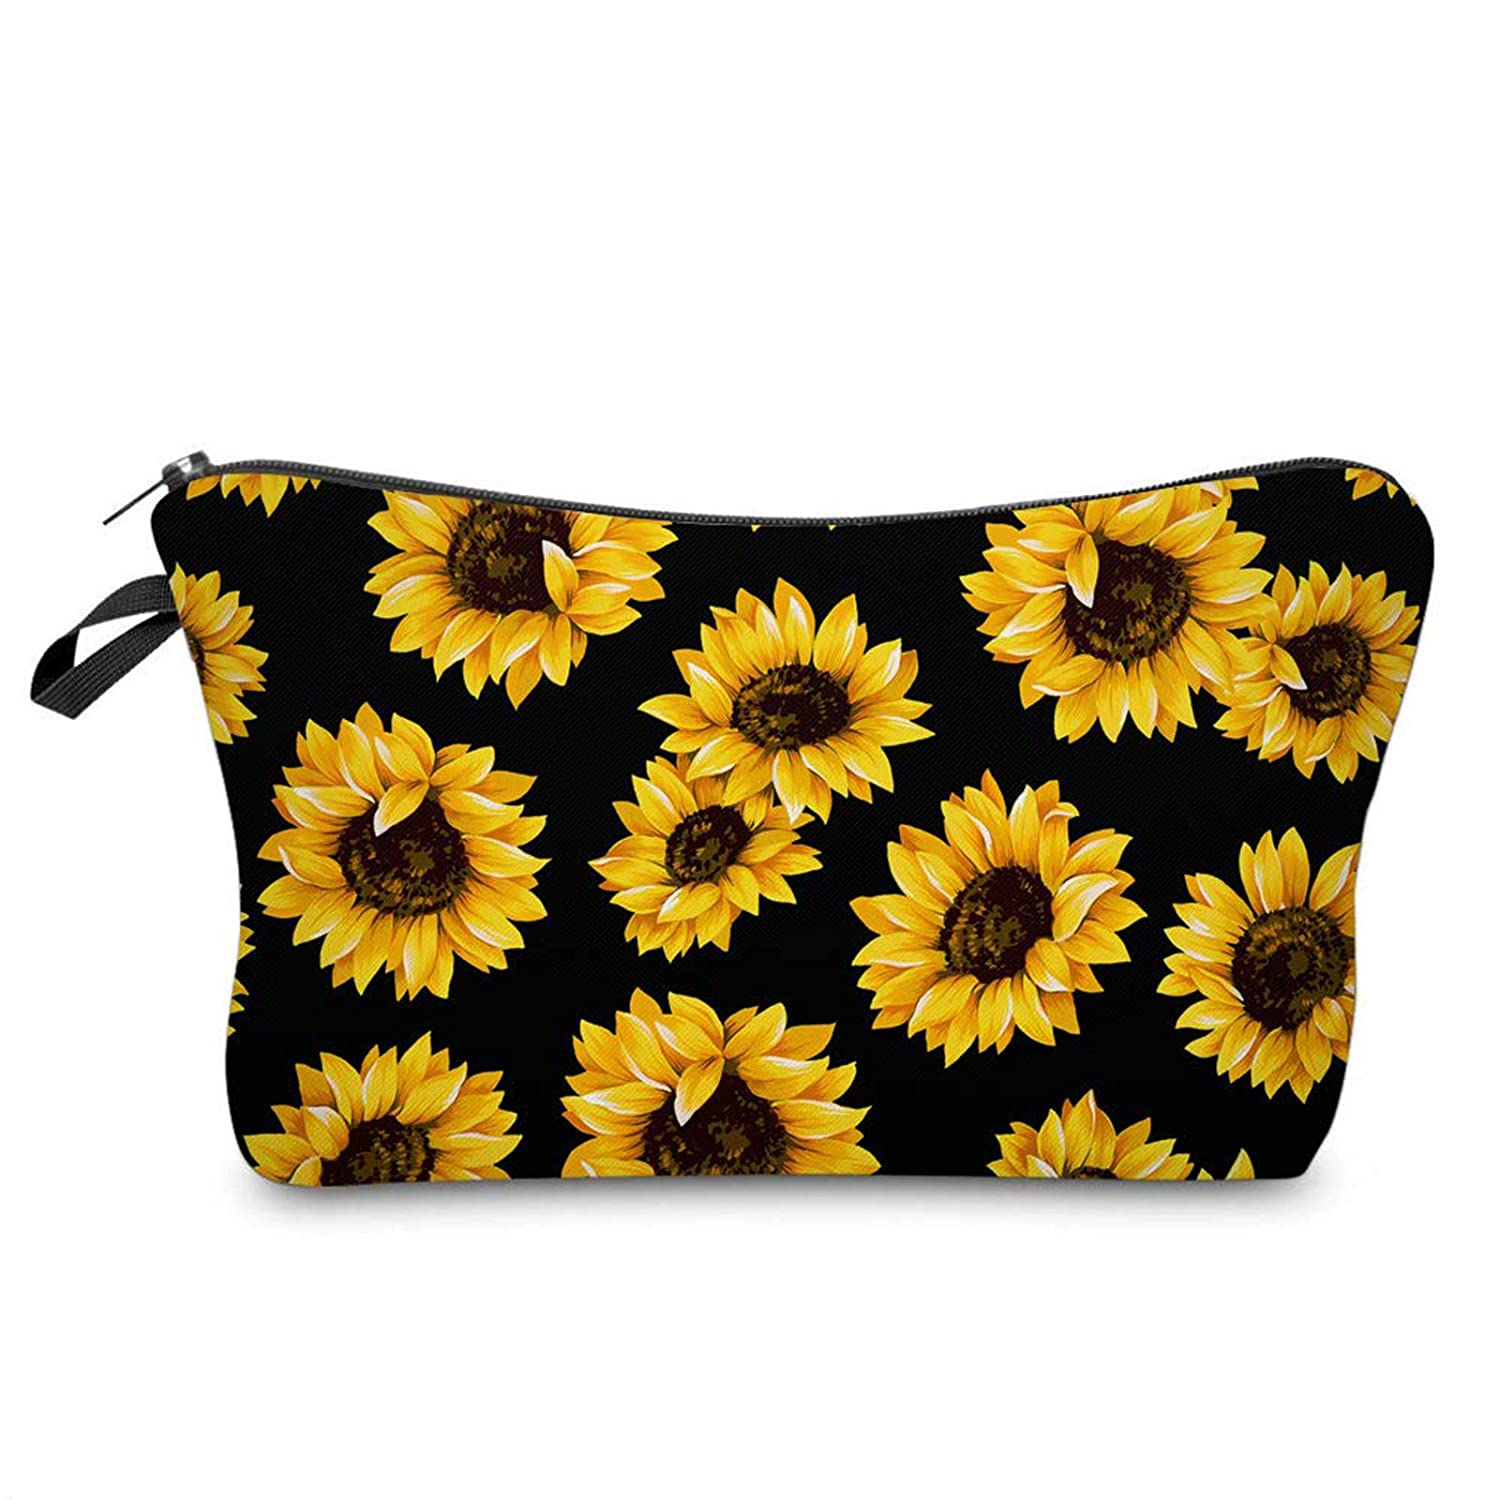 Sunflower Cosmetic Bag Sunflower Makeup Pouch Waterproof Toiletry Travel Makeup Organizer for Women